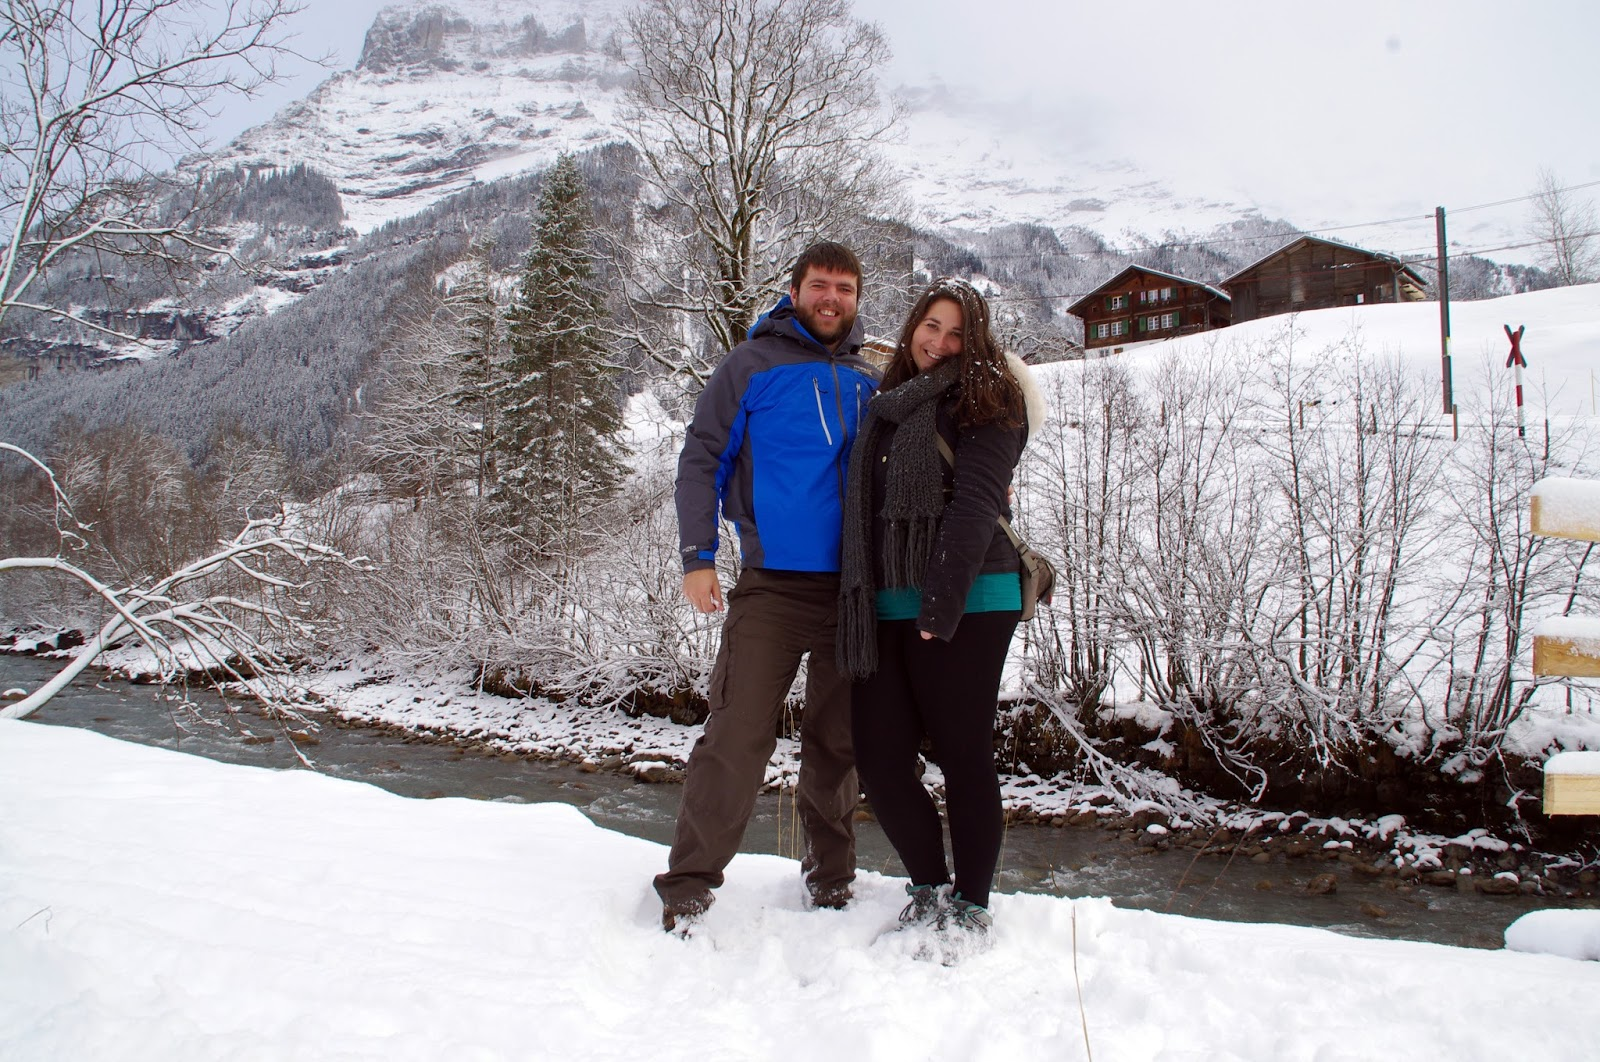 The Aussie Flashpacker Snow Switzerland